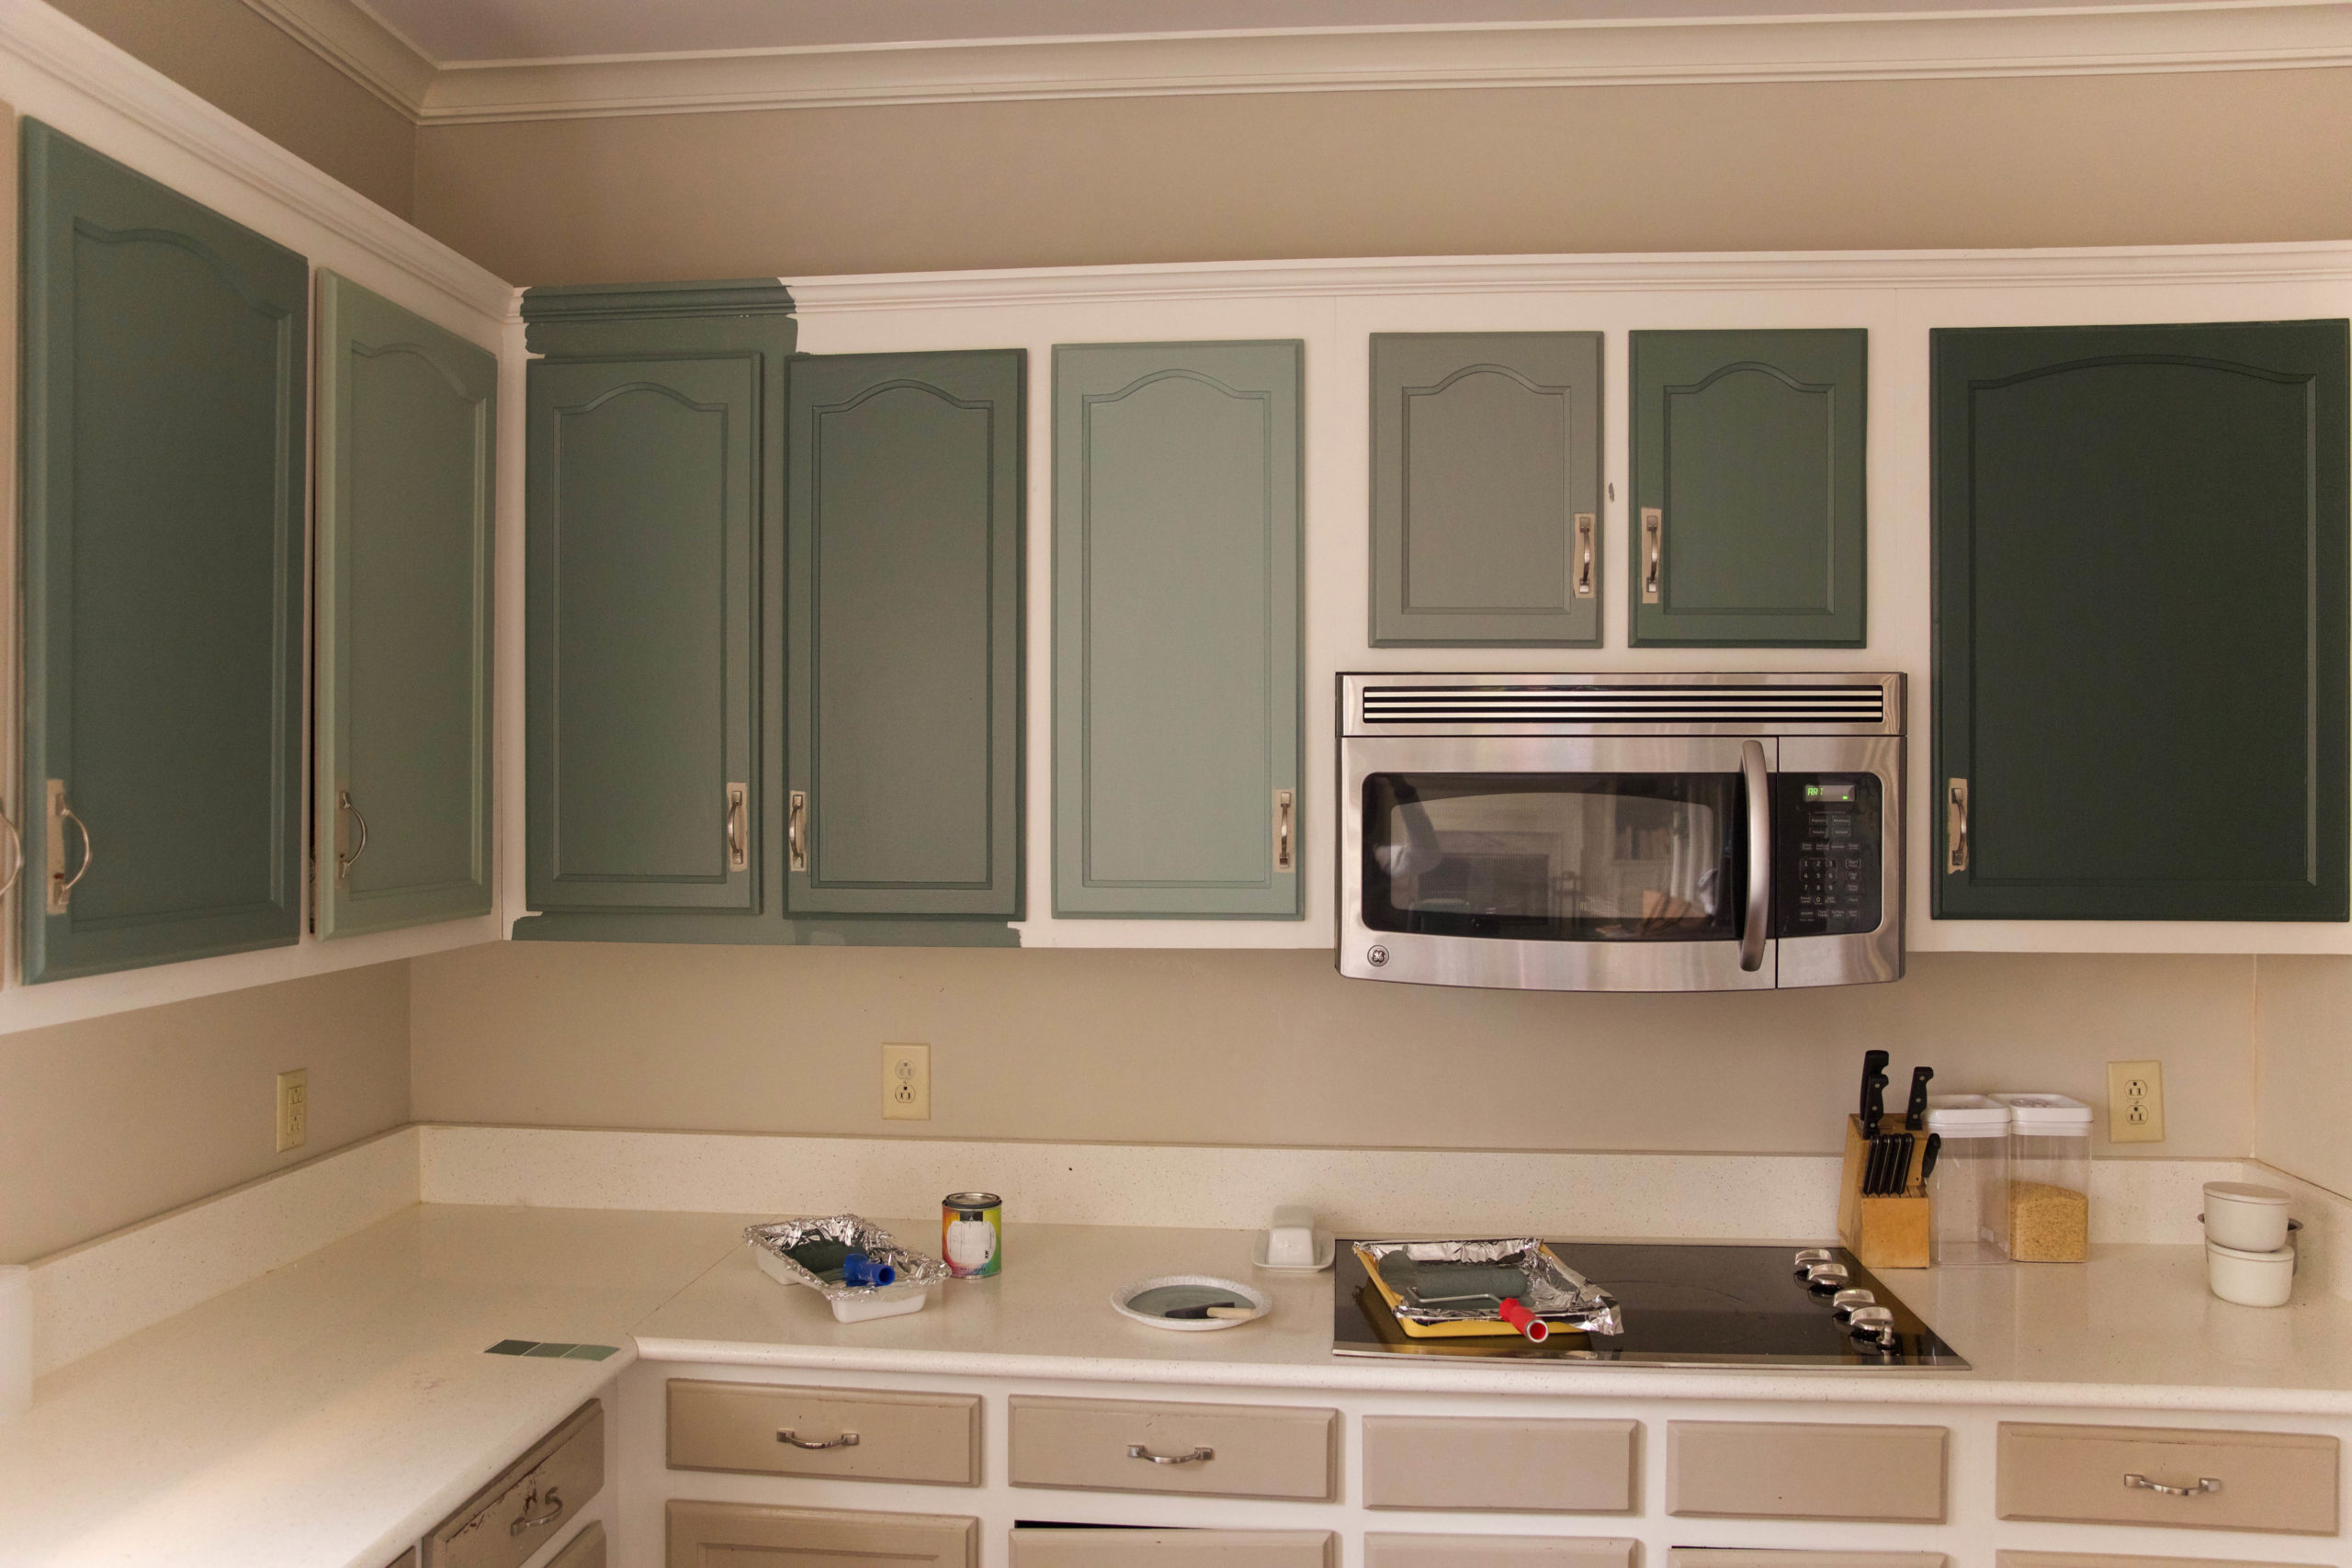 Kitchen Series Going Green In Honor Of Design